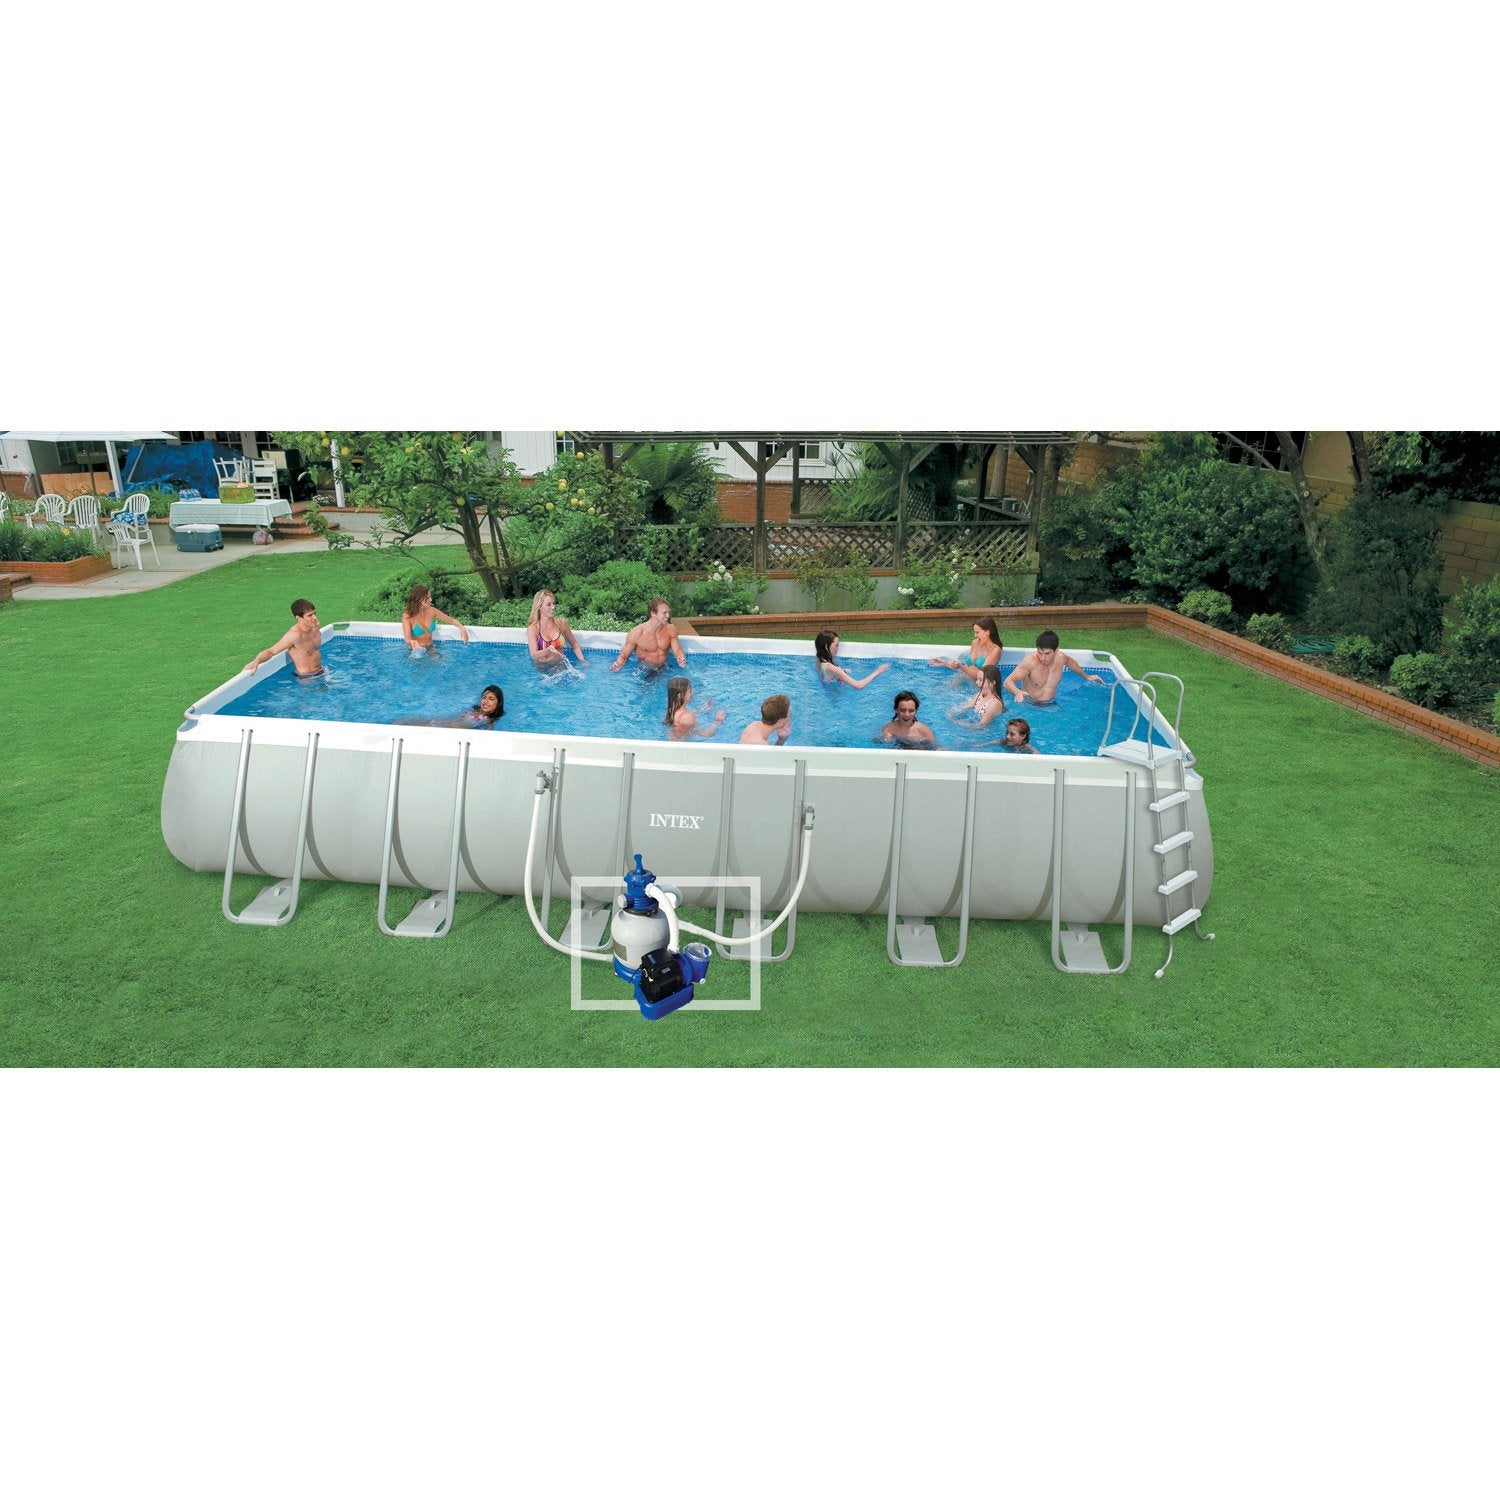 Piscine hors sol autoportante tubulaire ultra silver intex for Piscine hors sol 7 x 4